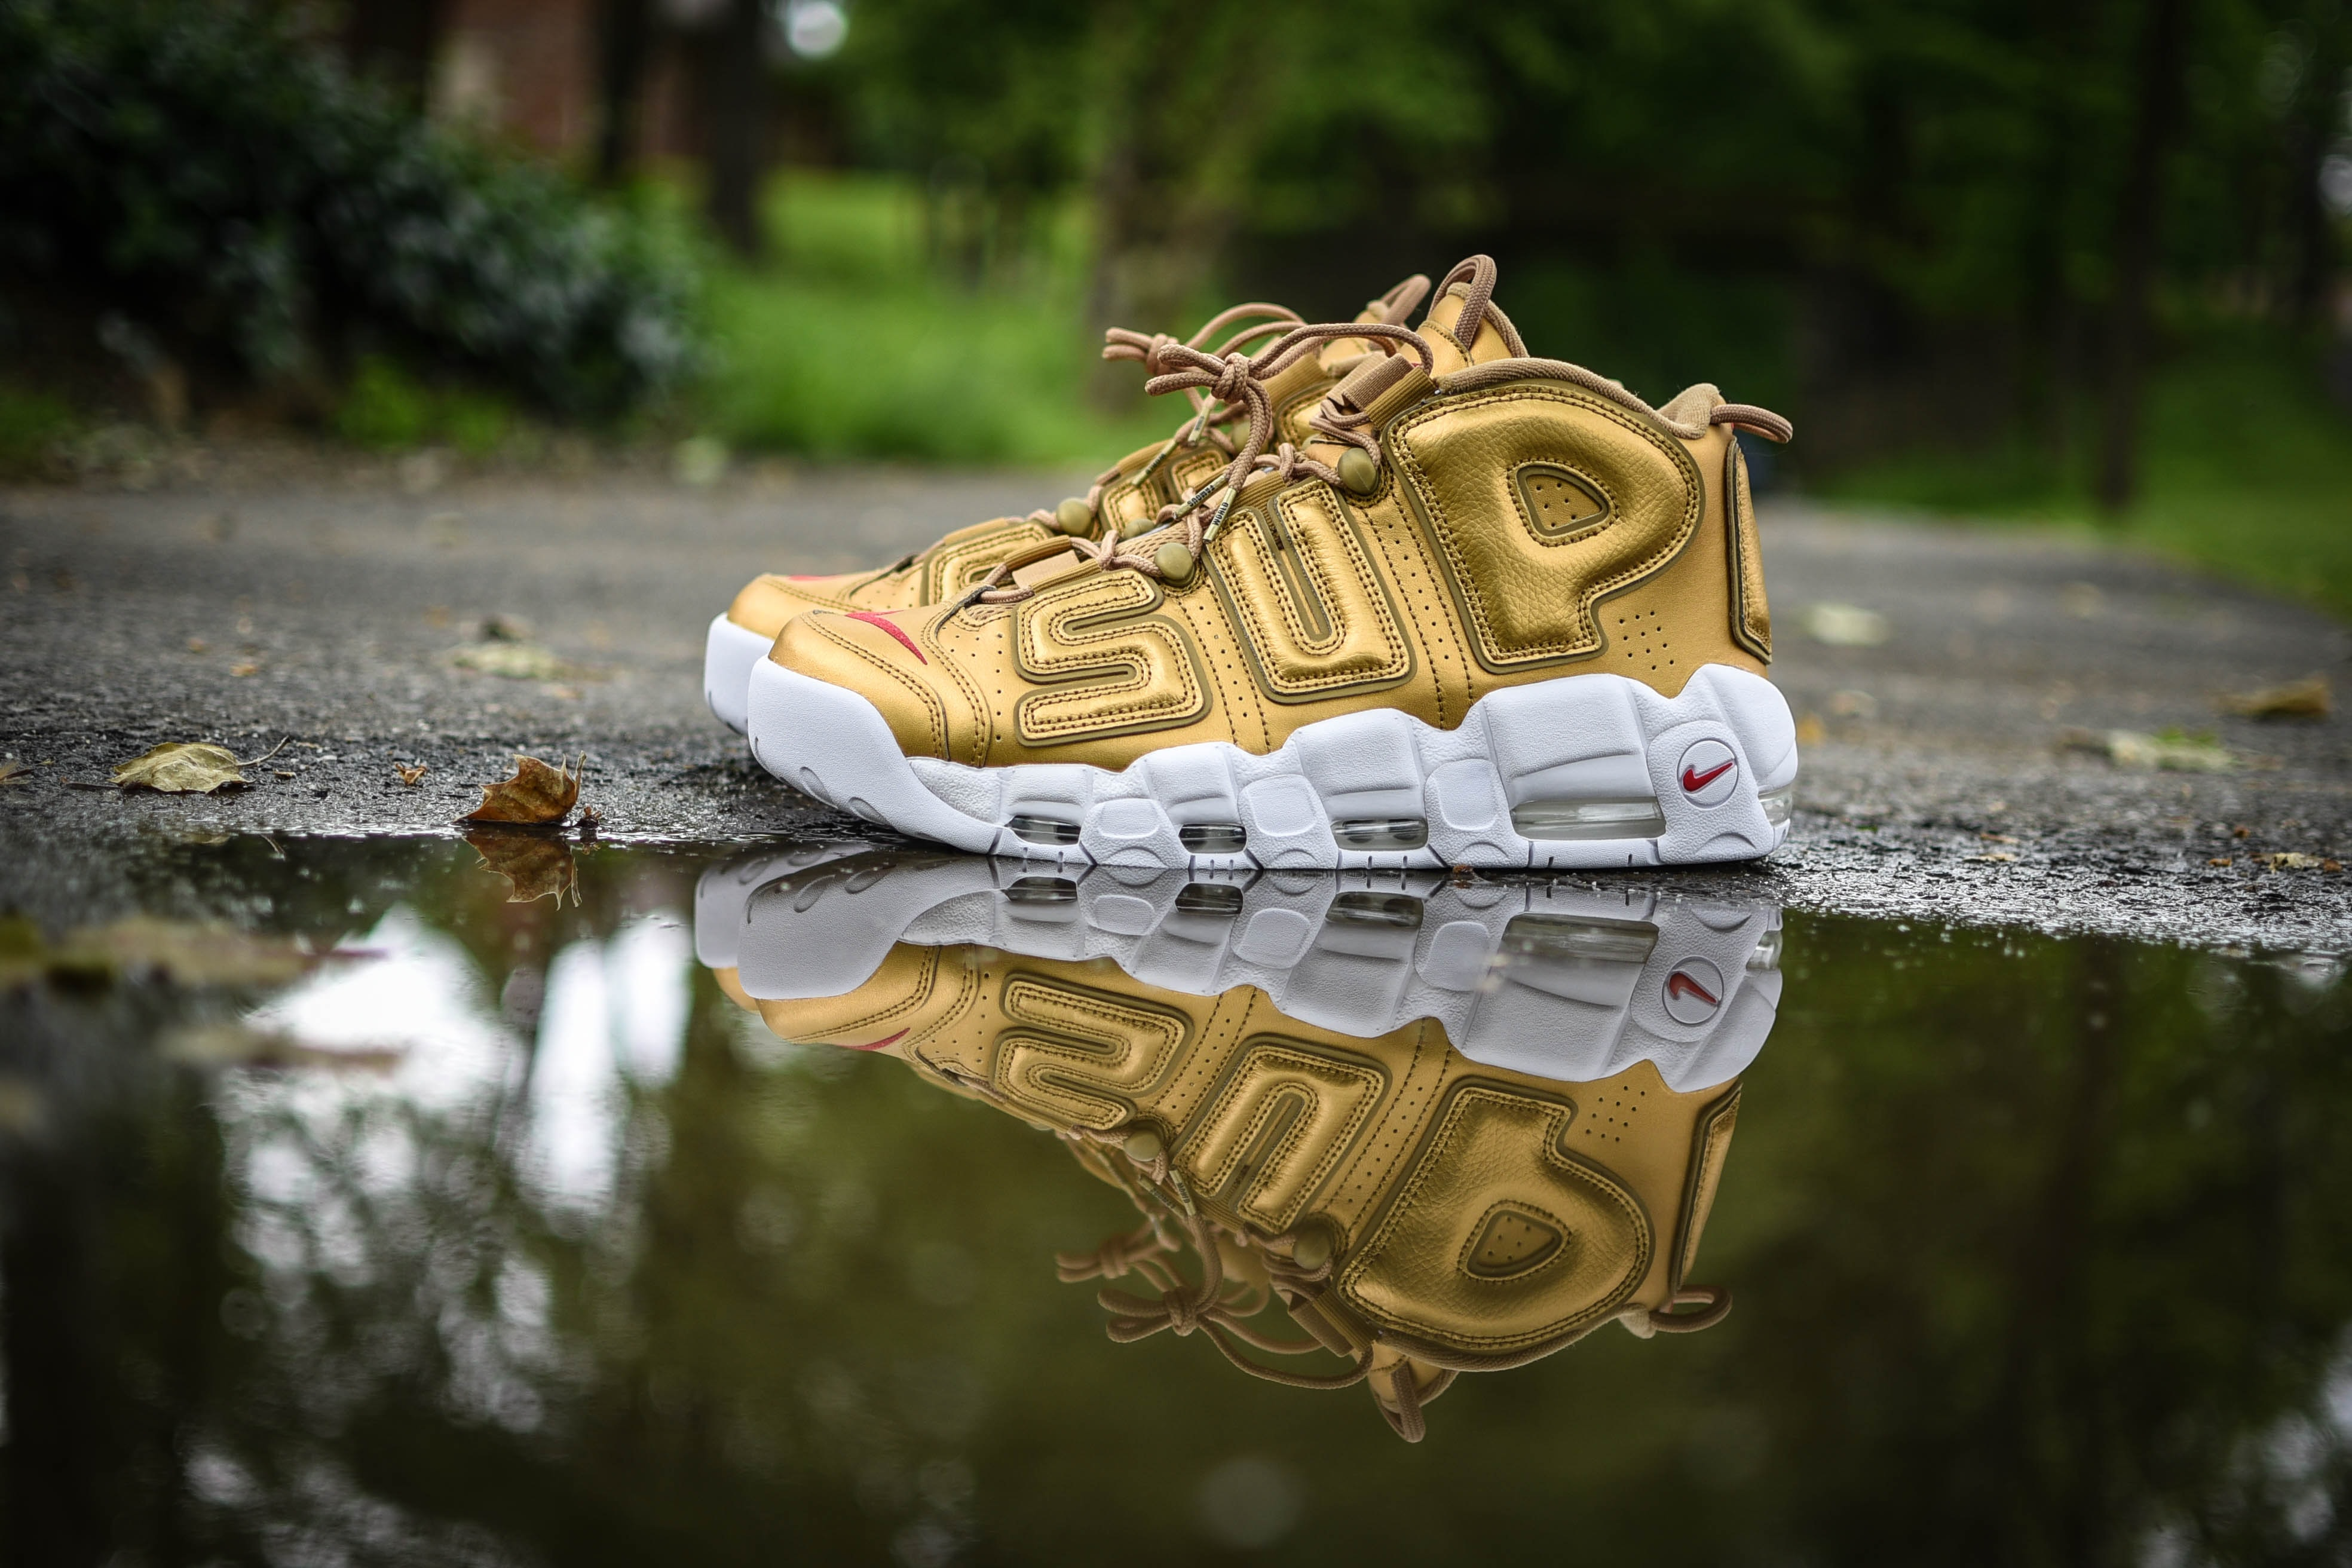 unpaired gold and white Nike shoe near trees